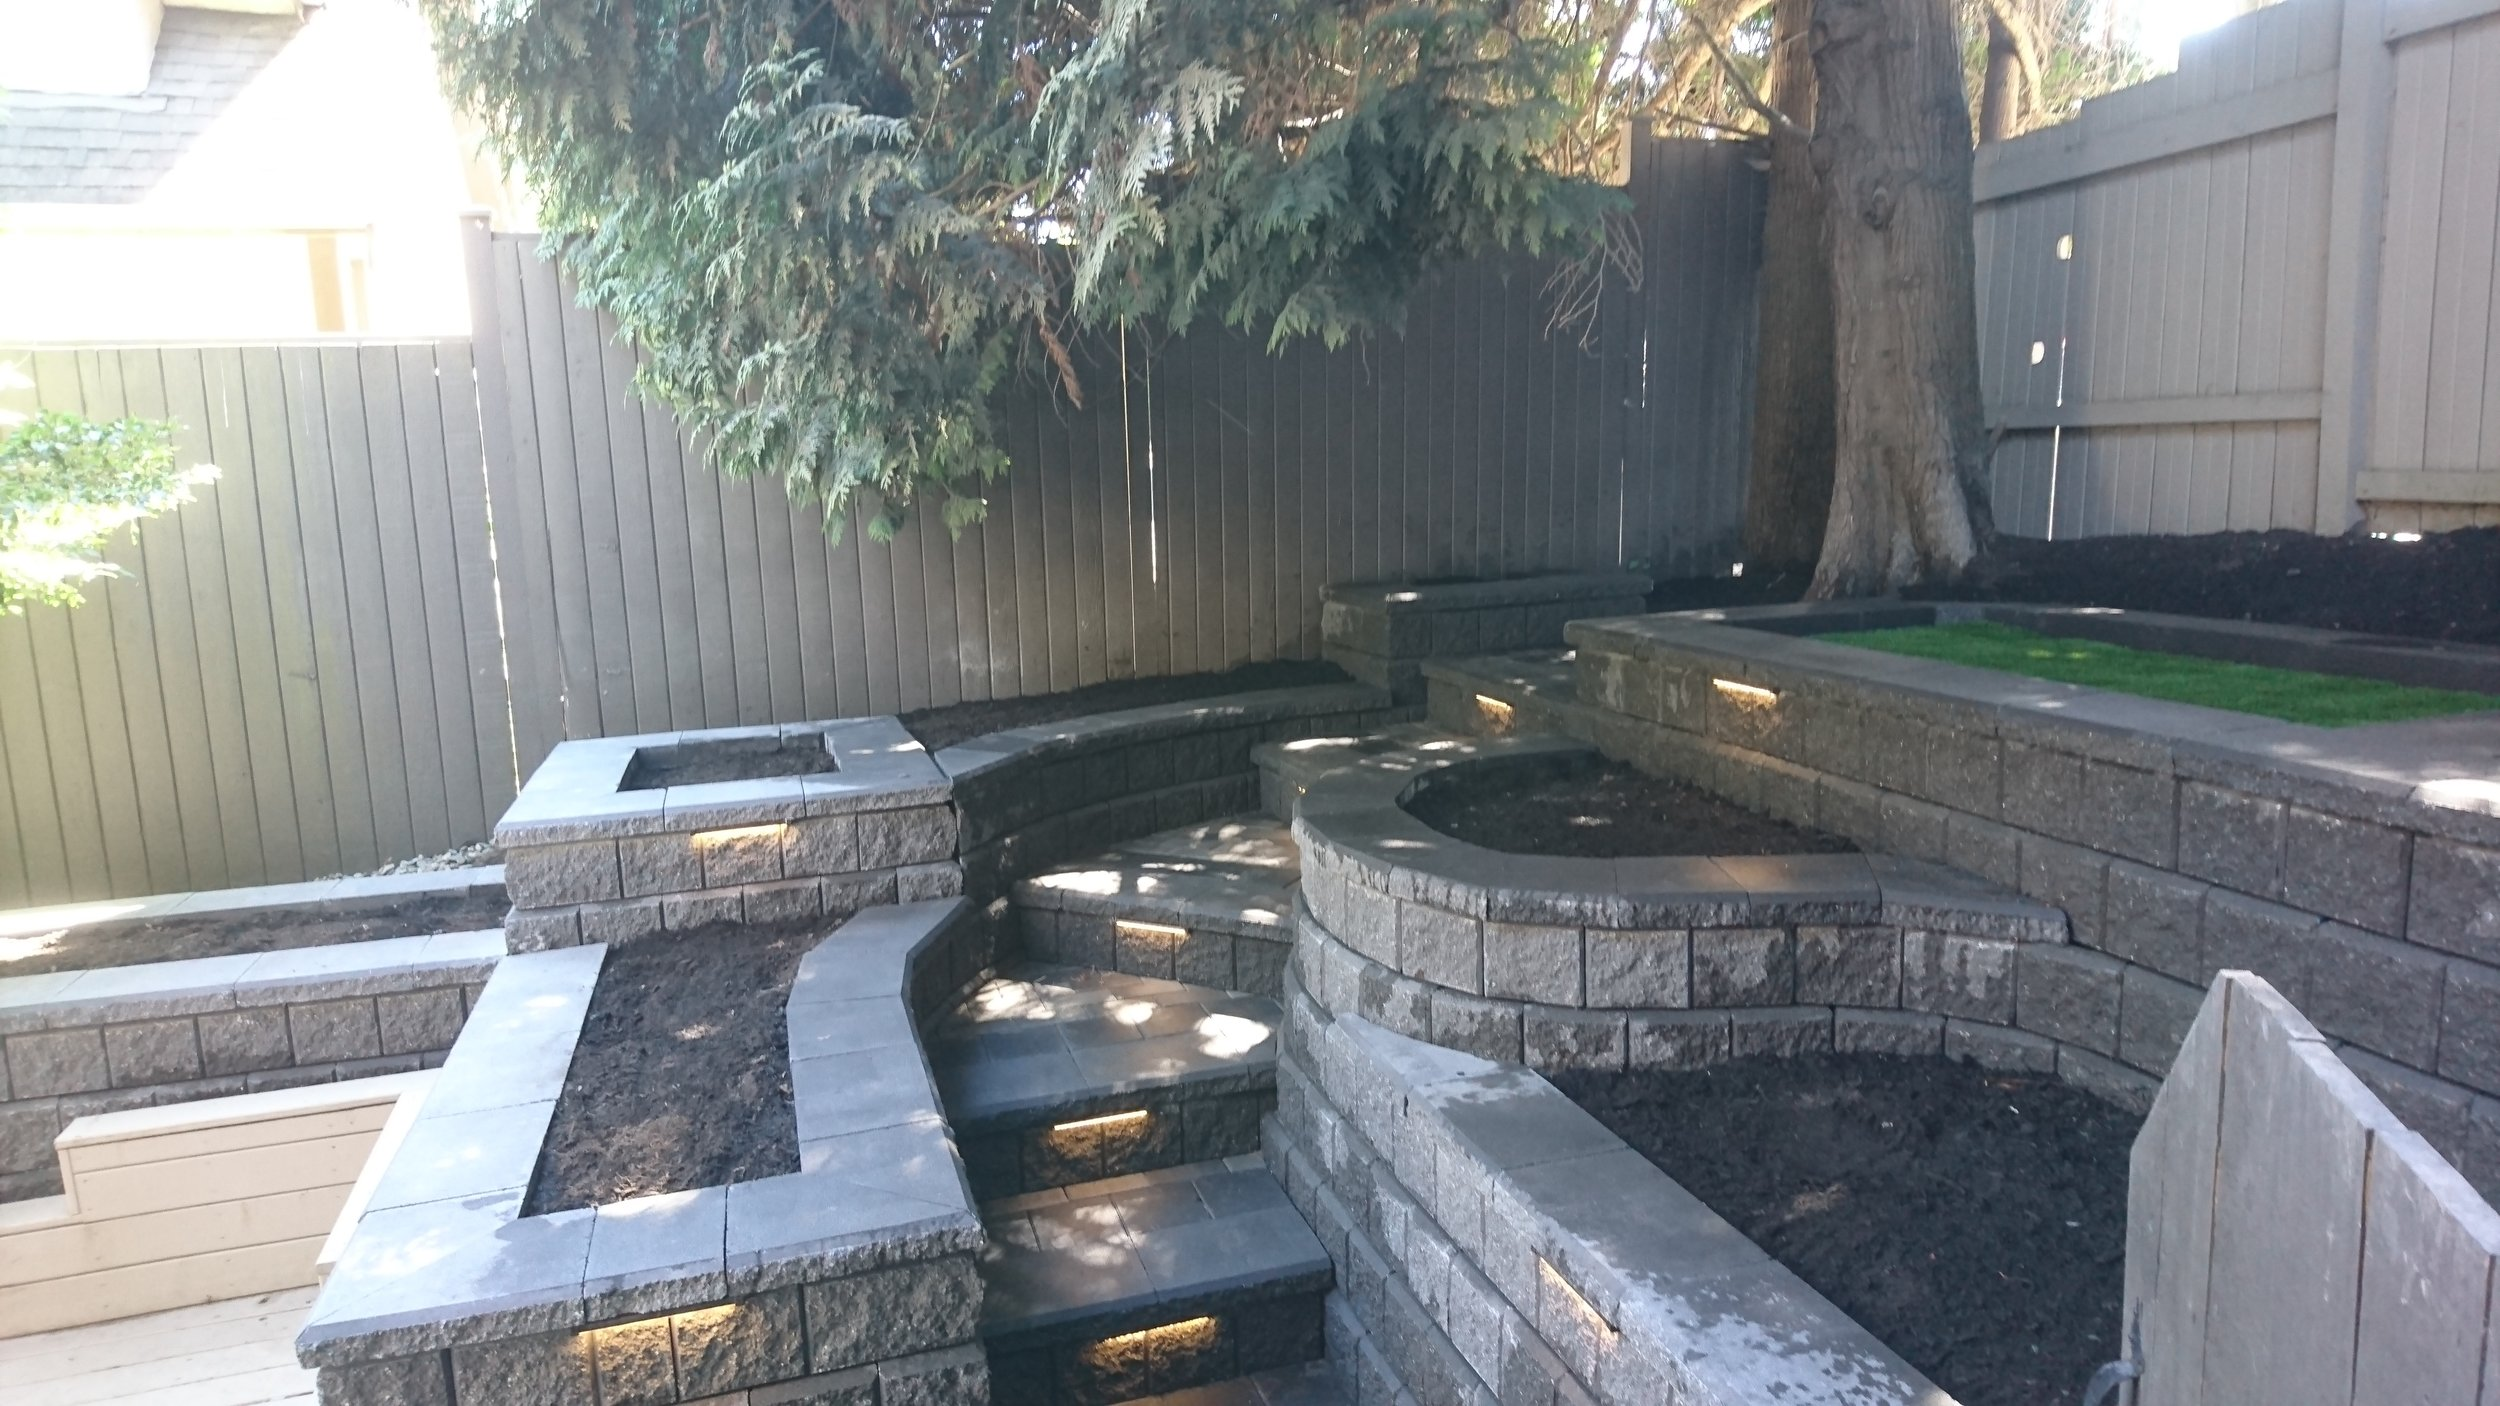 Hardscape   - - Retaining walls- Paving- Planters- Redesign projects- Landscape lighting